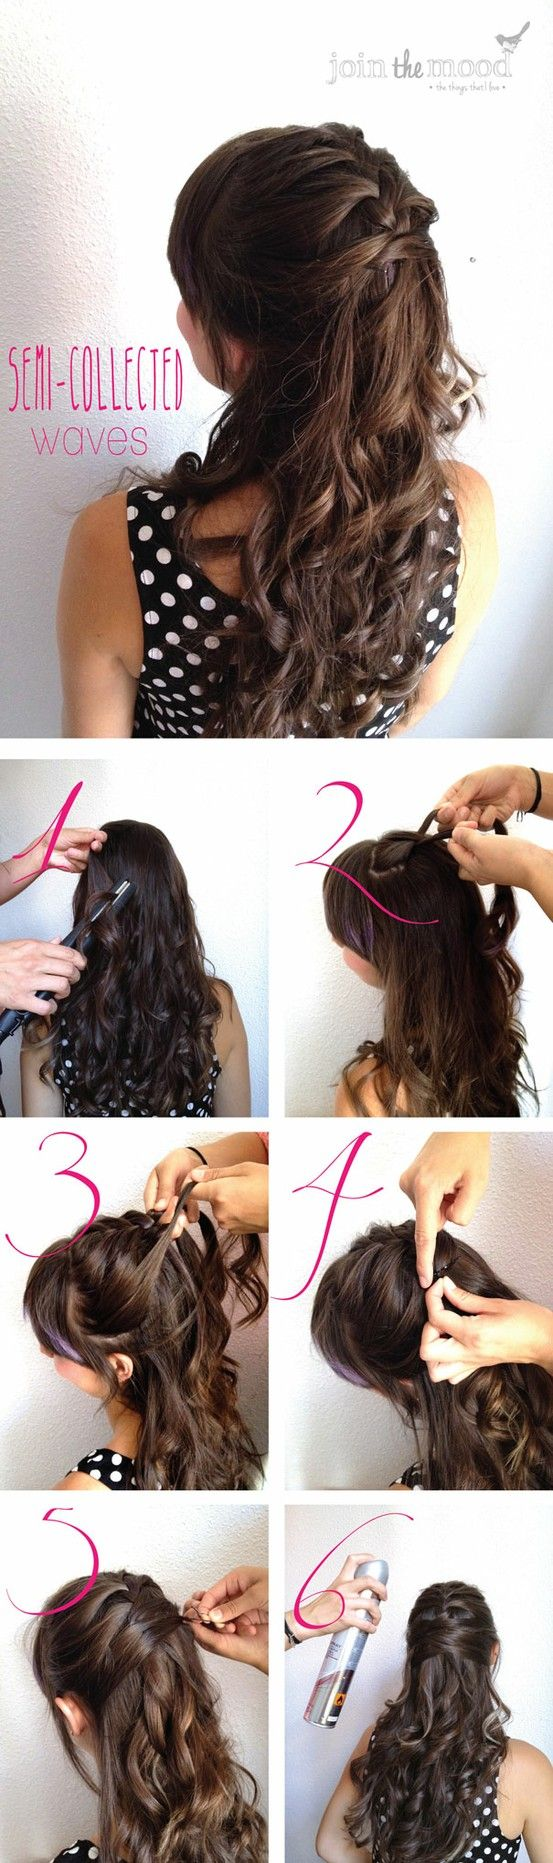 A Collection of 20 Chic Hairstyles for All Occasions -- Semi Collected Waves Hairstyle